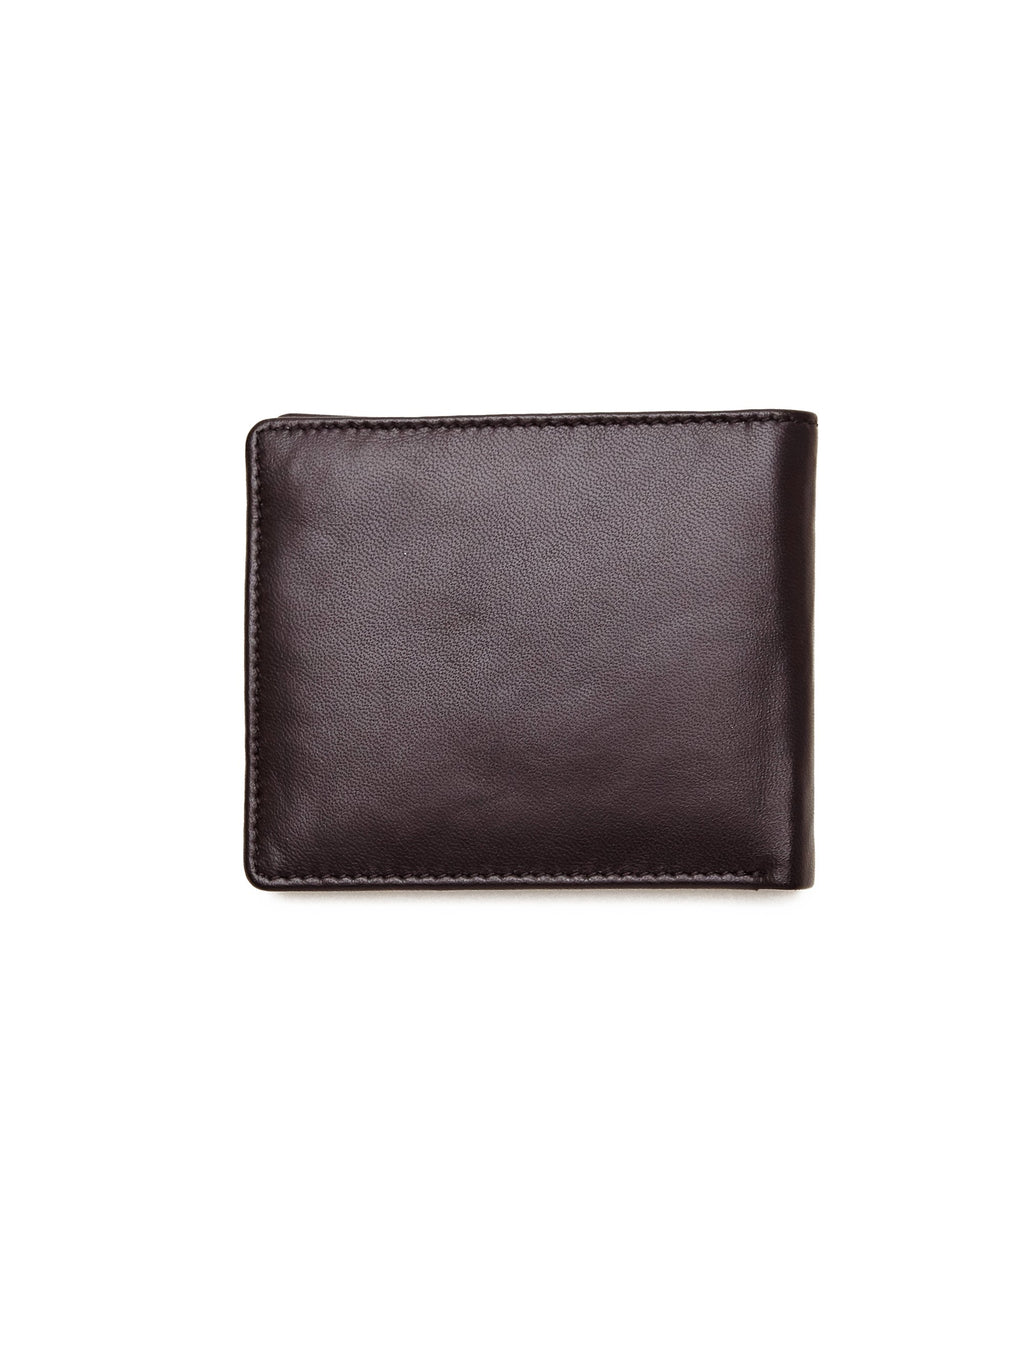 OBEY - Vandal Jumble Bi-Fold Wallet, Black